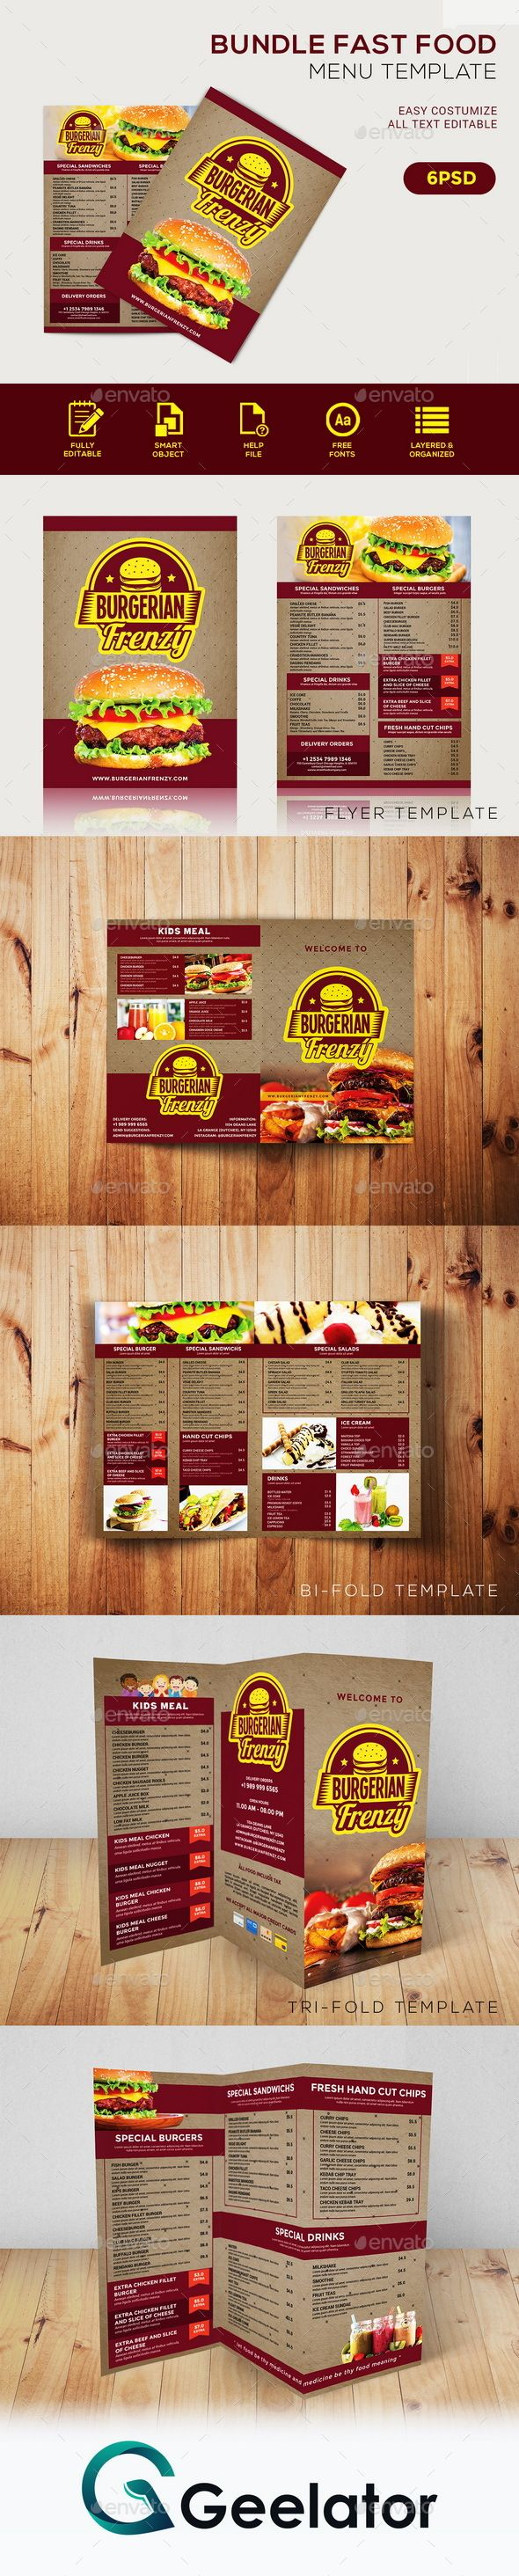 Bundle Fast Food Menu Template